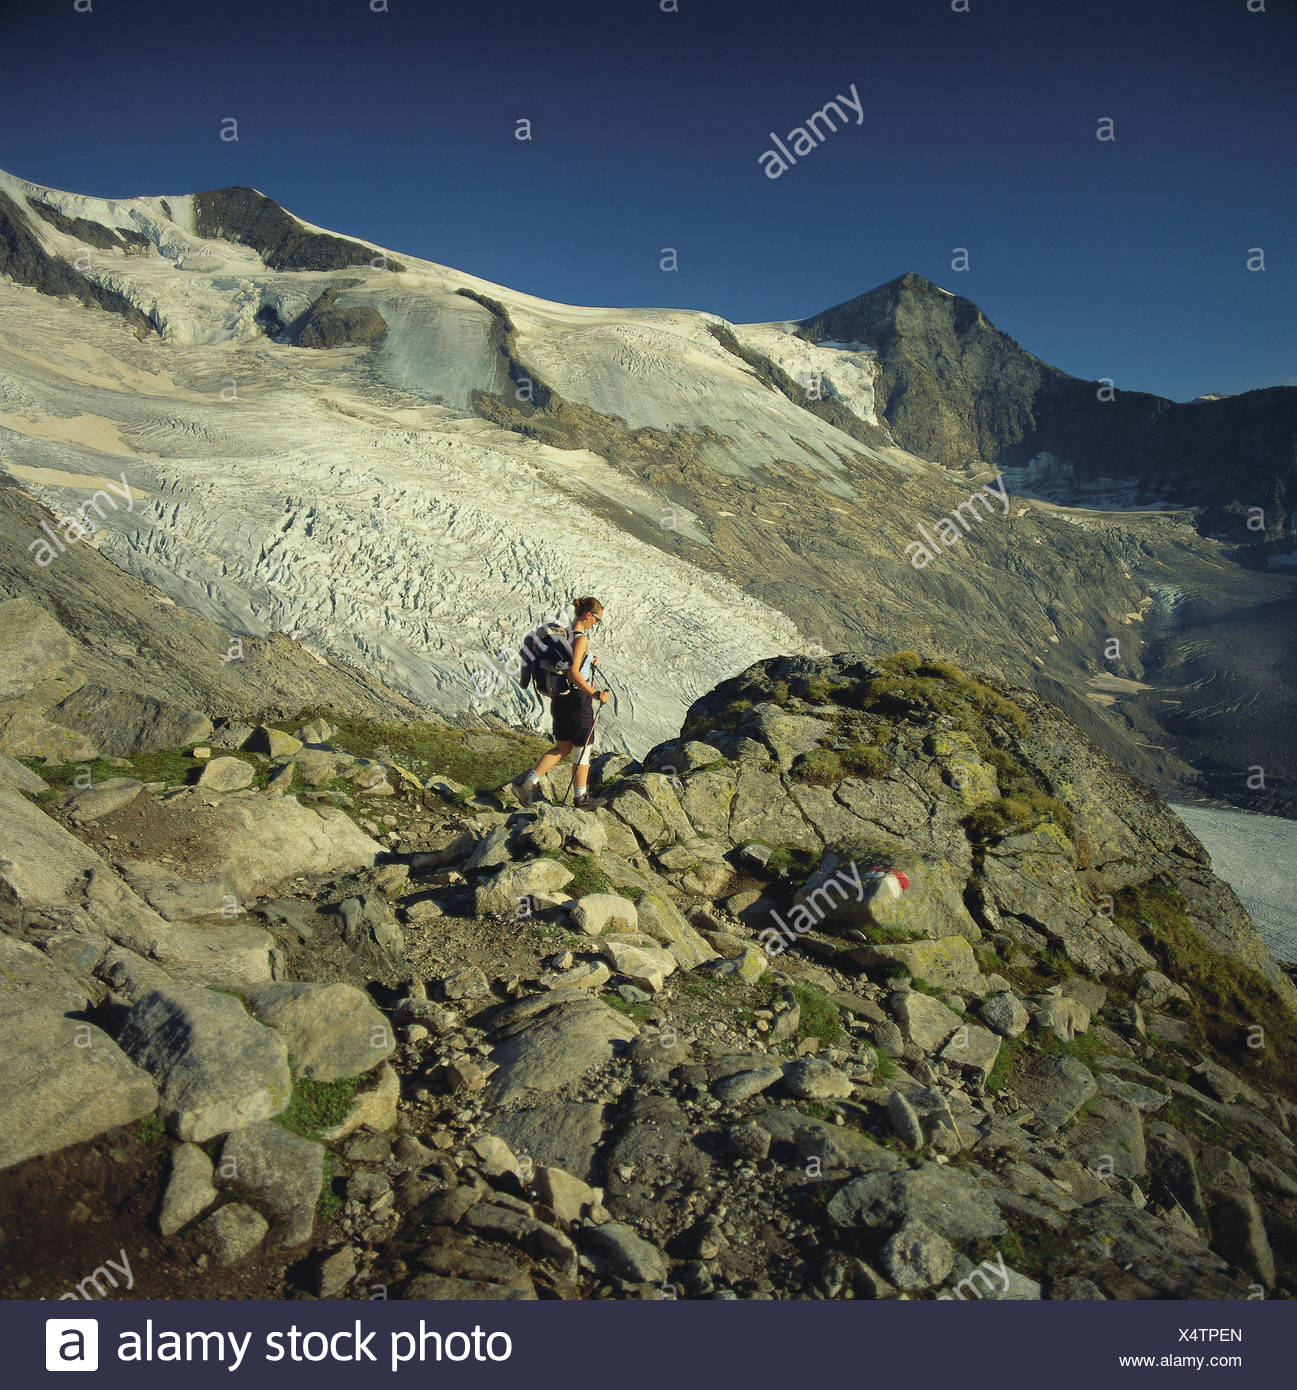 Austria, Osttirol, Matrei, Gletscherkees, traveller, mountains, mountains, scenery, mountain landscape, snow, ice, glacier, glacier ice, stones, scanty, nature, person, woman, backpack, mountain hike, tour, walk, travelling area, - Stock Image